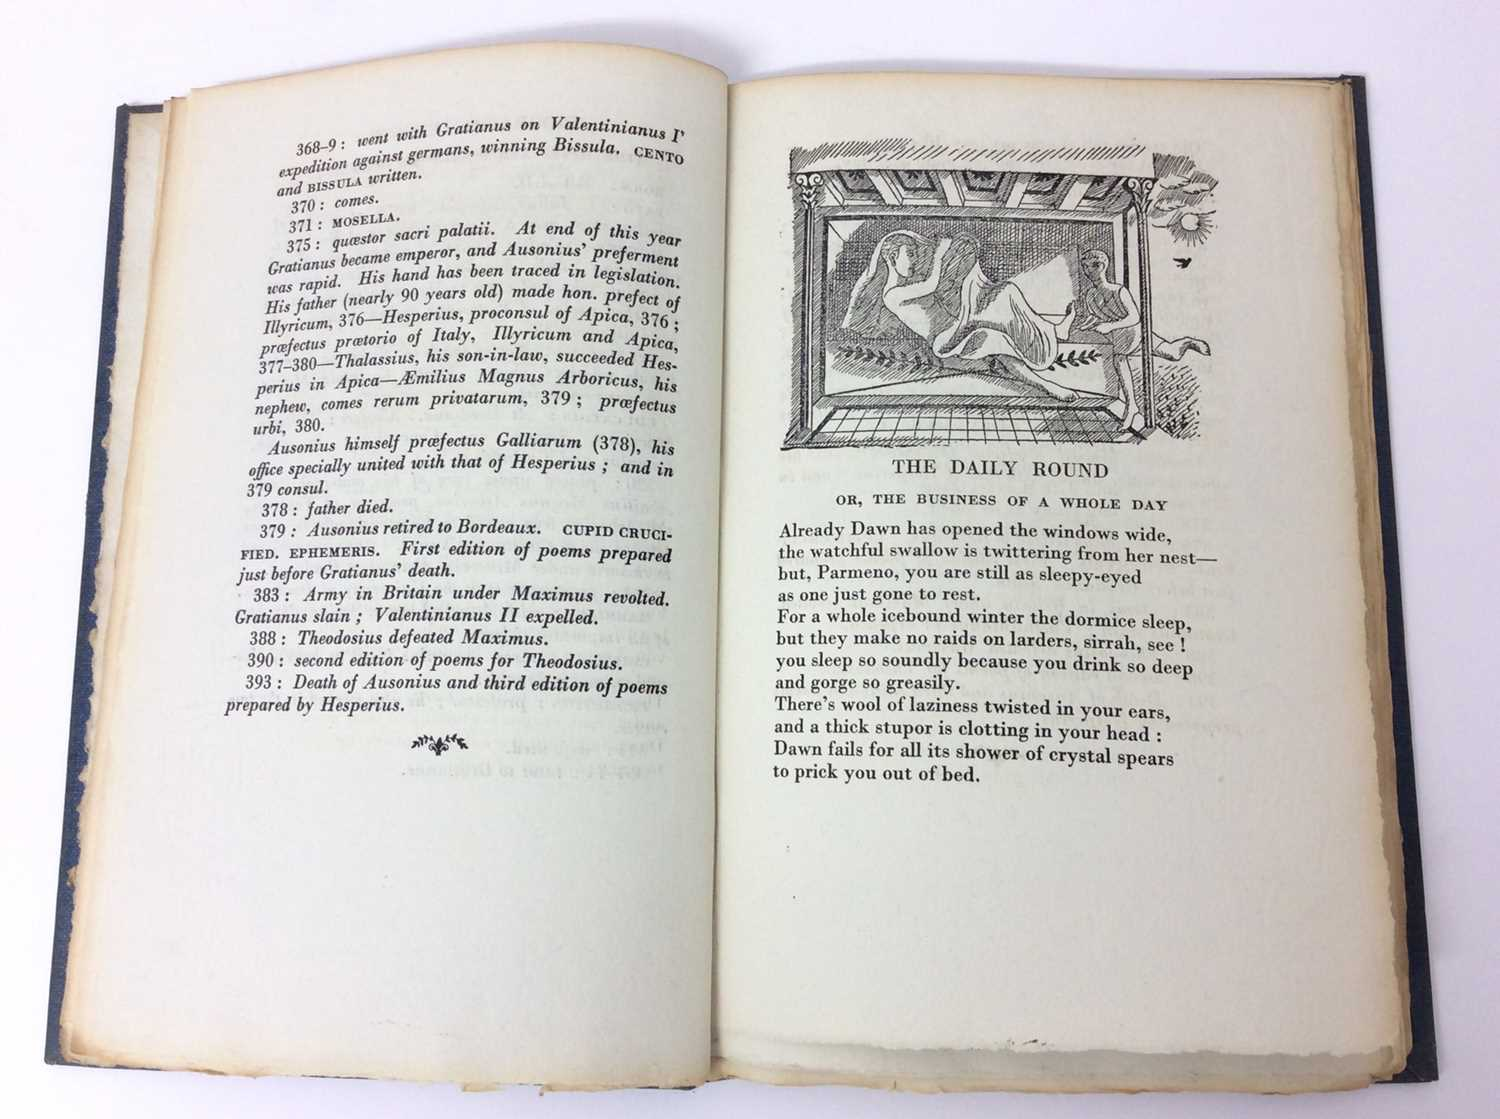 Patchwork Quilt. Poems by Decimus Magnus Ausonius, with illustrations by Edward Bawden, Franfrolico - Image 4 of 7